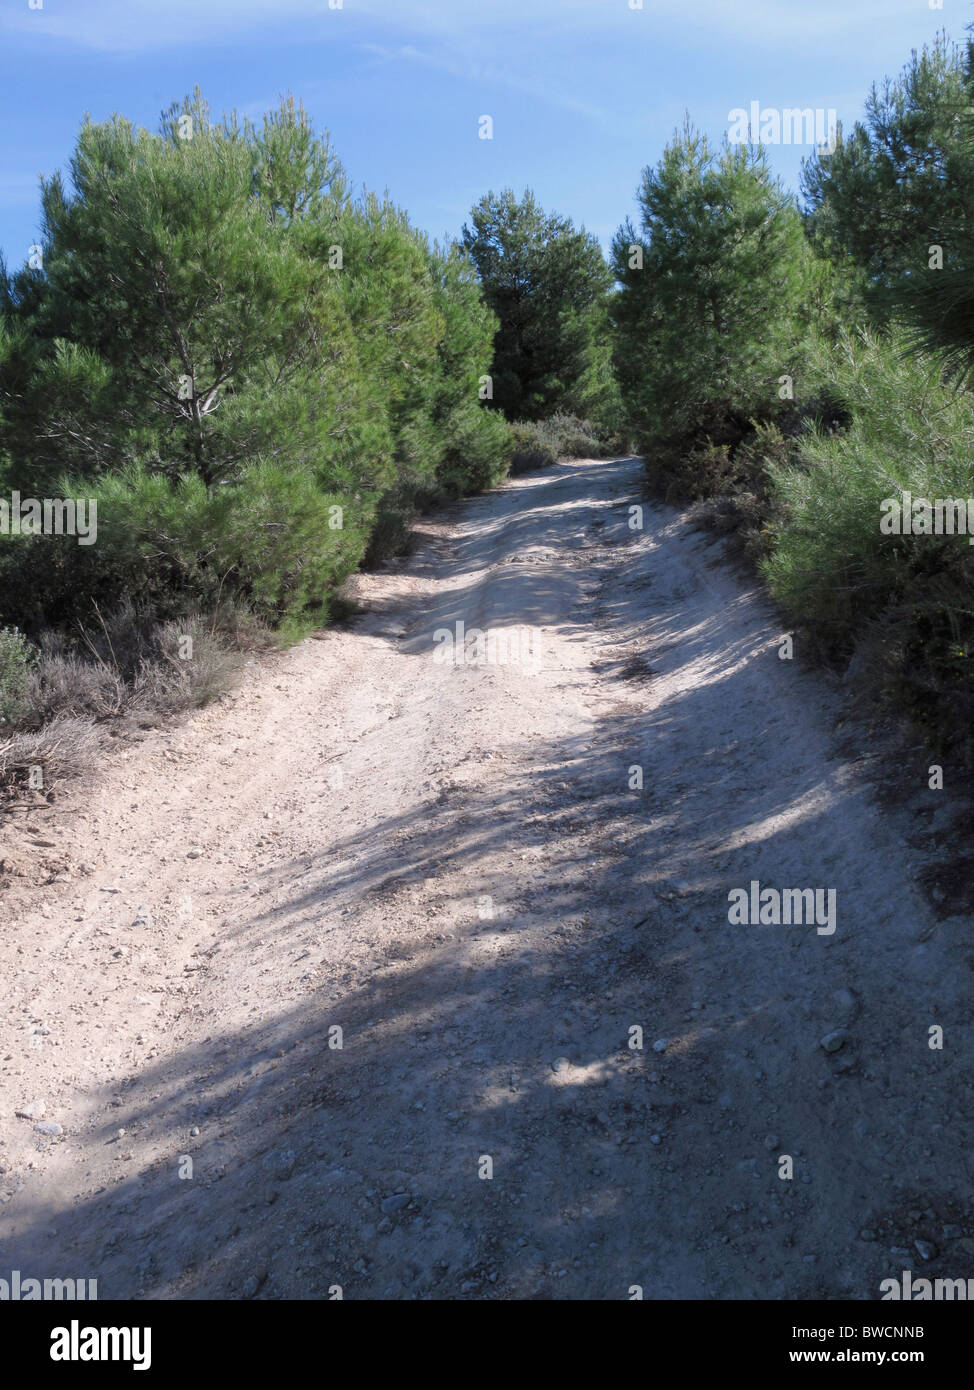 Rough country dirt track amongst young pine trees. - Stock Image